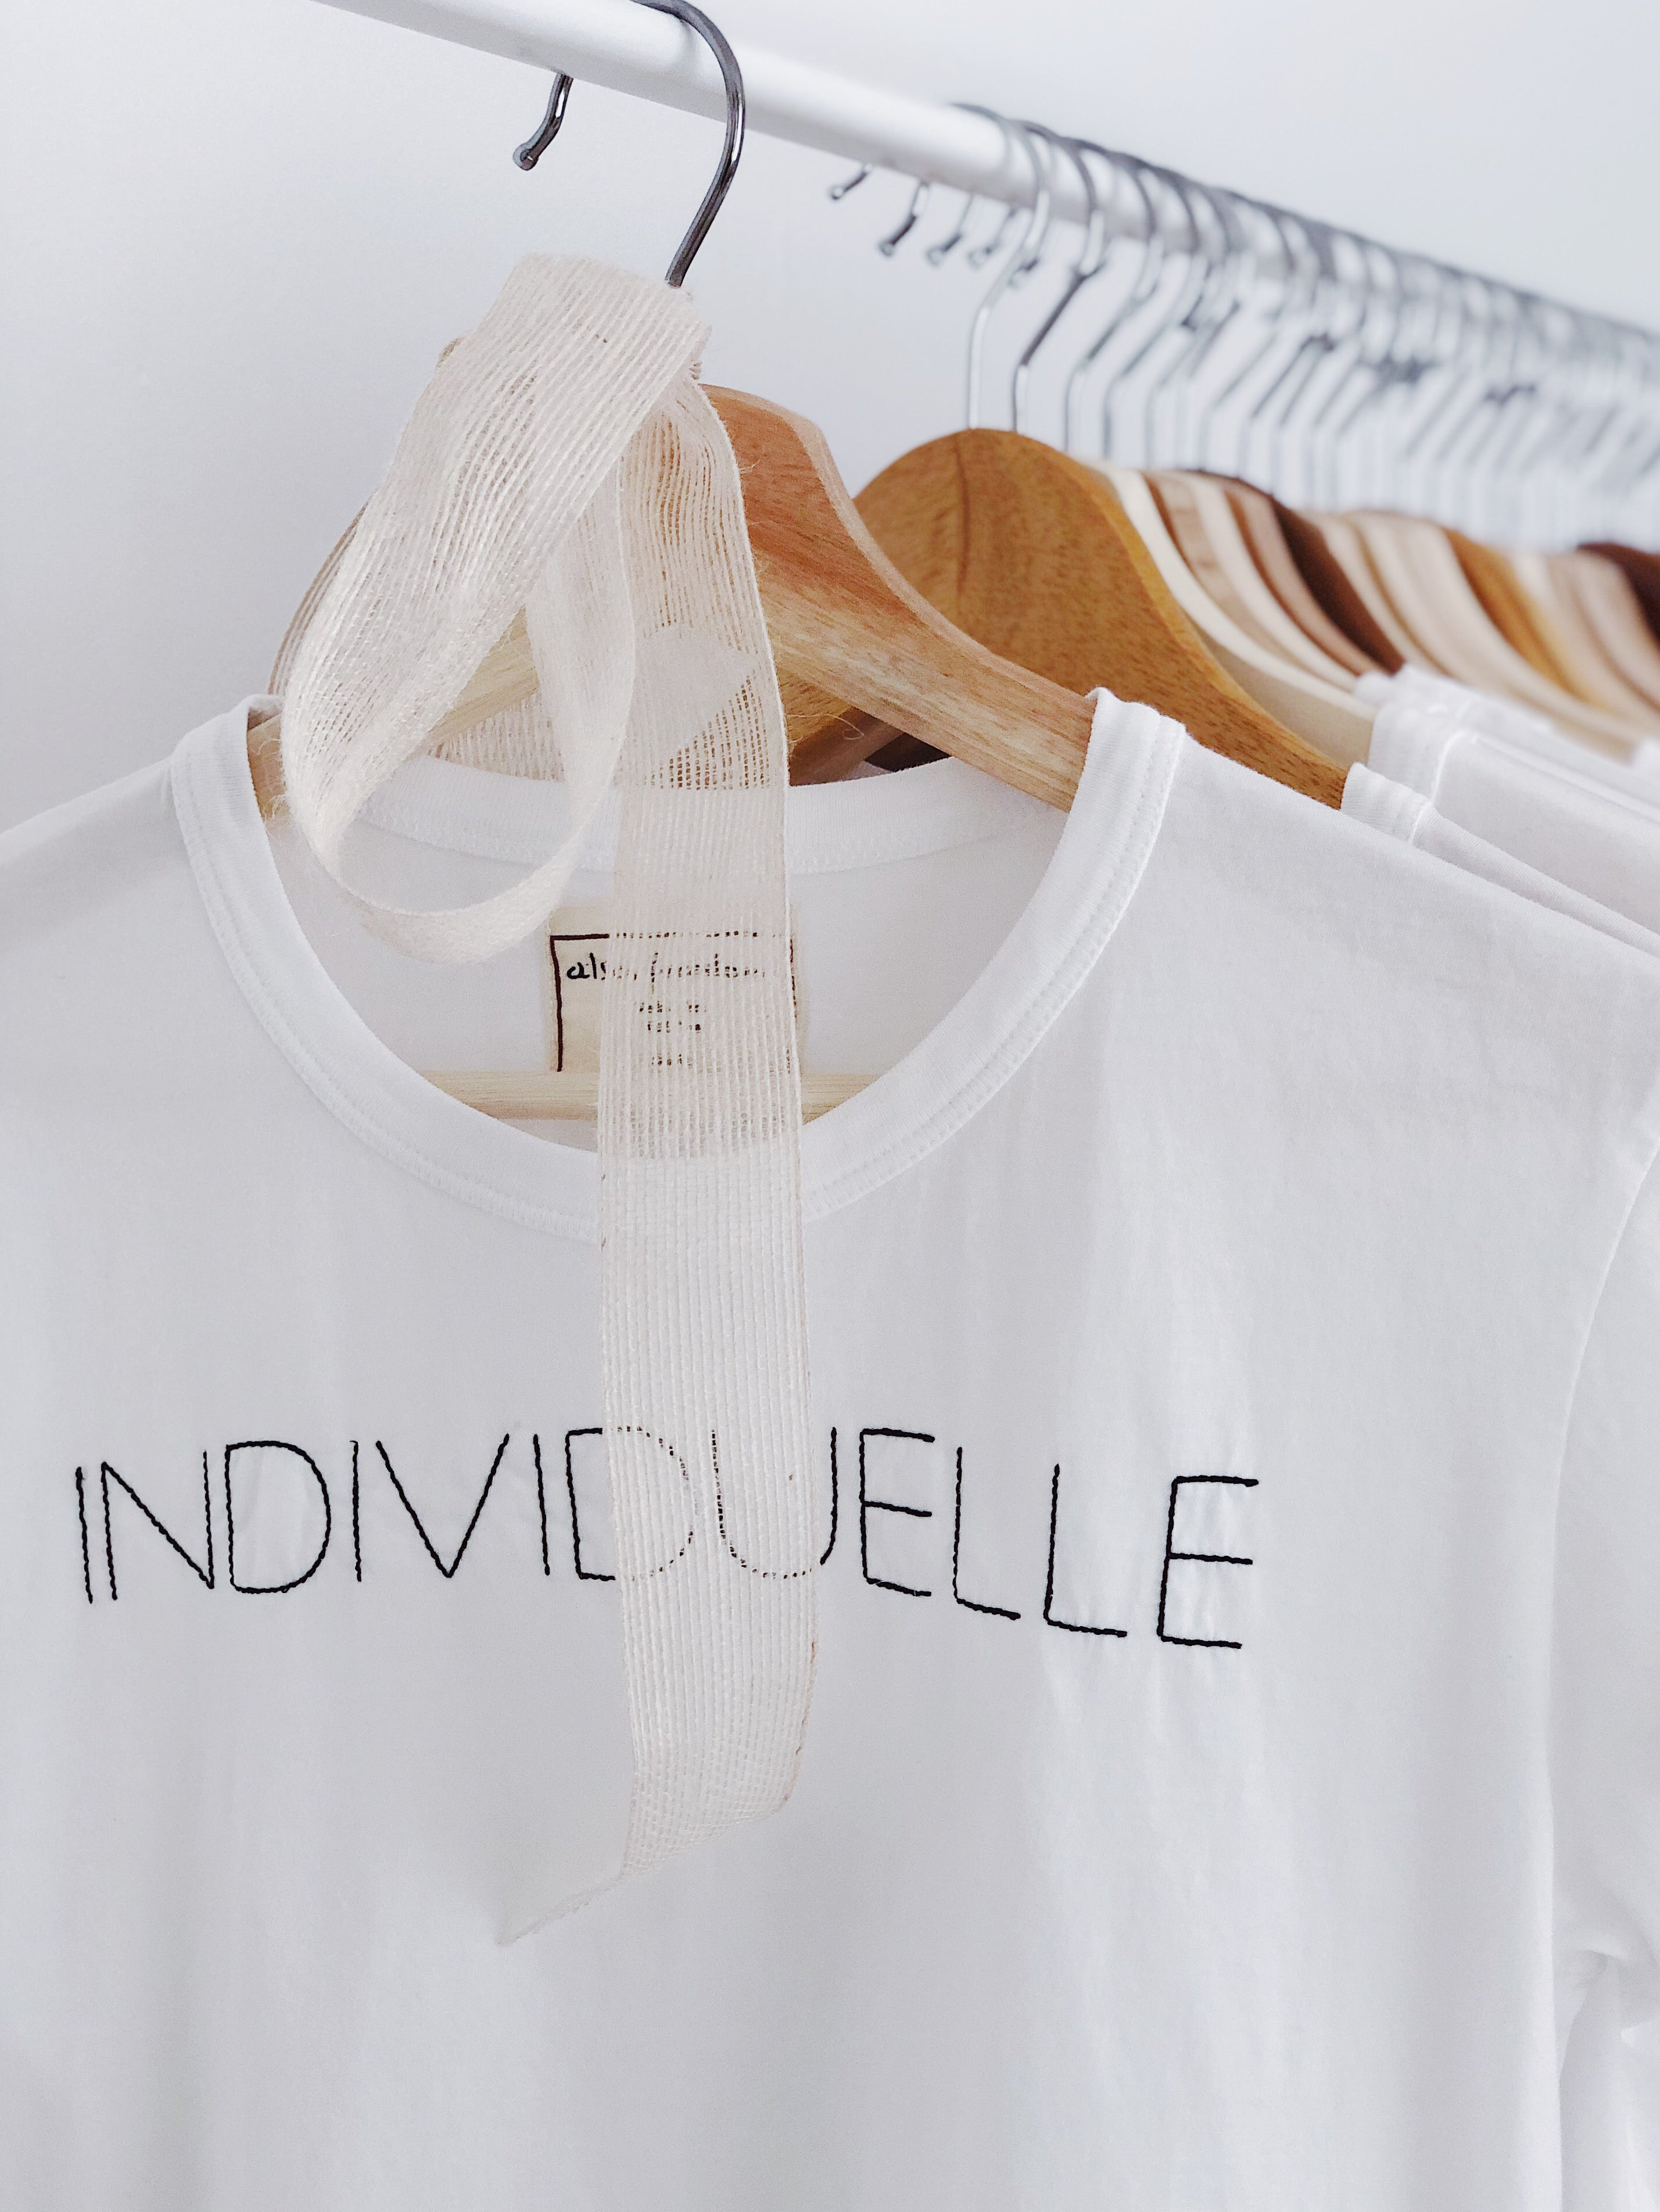 Individuelle, Baby Girl Tee